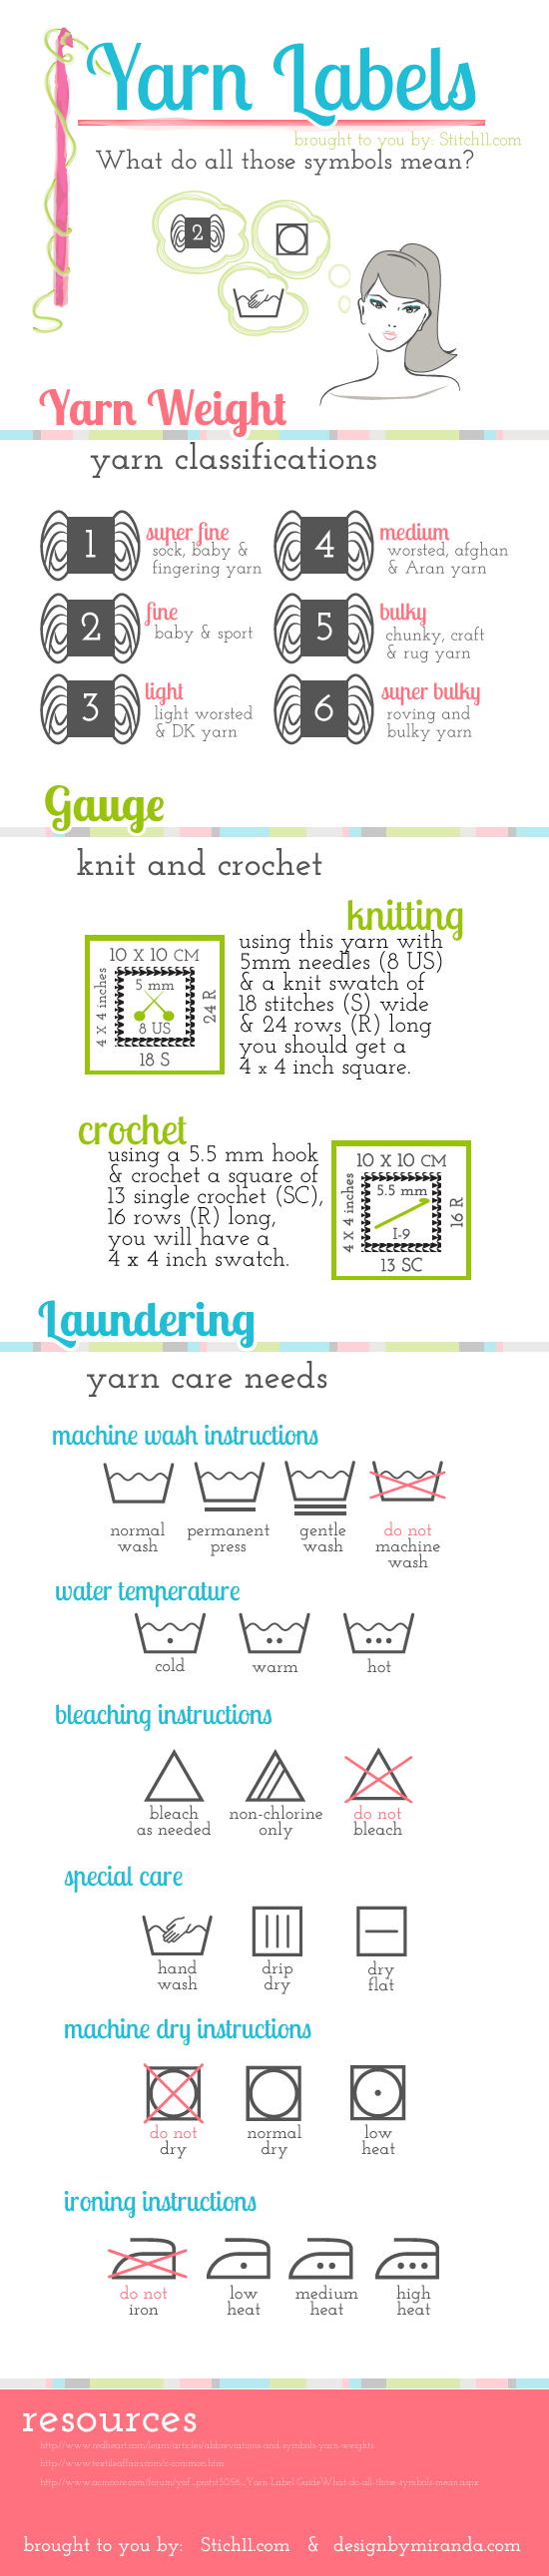 Yarn Label Info Chart — explains the numeric weights and washing symbols